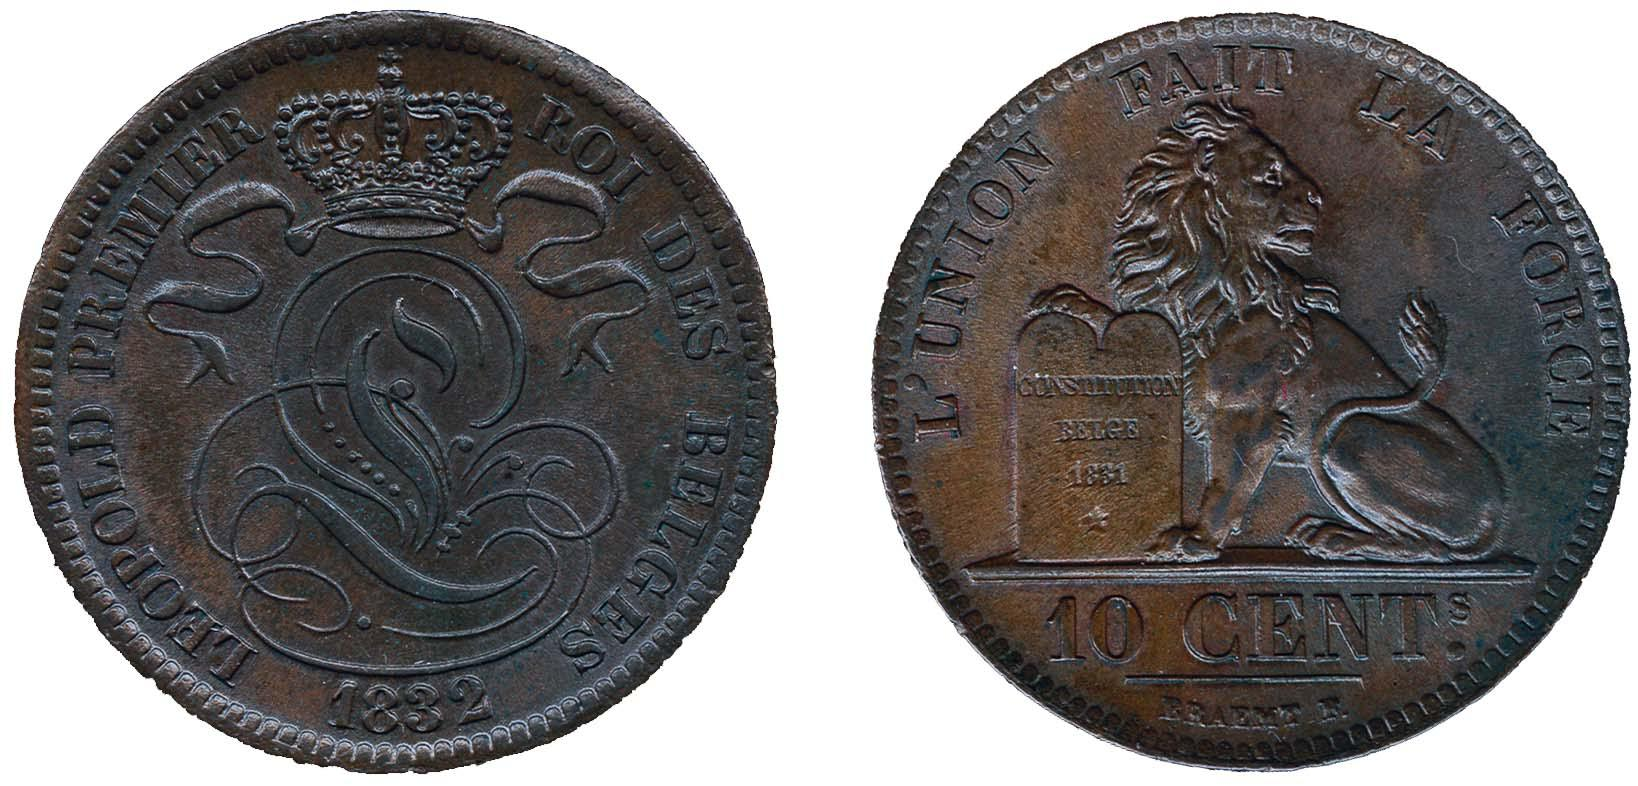 Lot 1408 - Belgium and former colonies Belgium -  Corinphila Veilingen Auction 250-253 - Day 2 - Coins, medals, Netherlands and former colonies